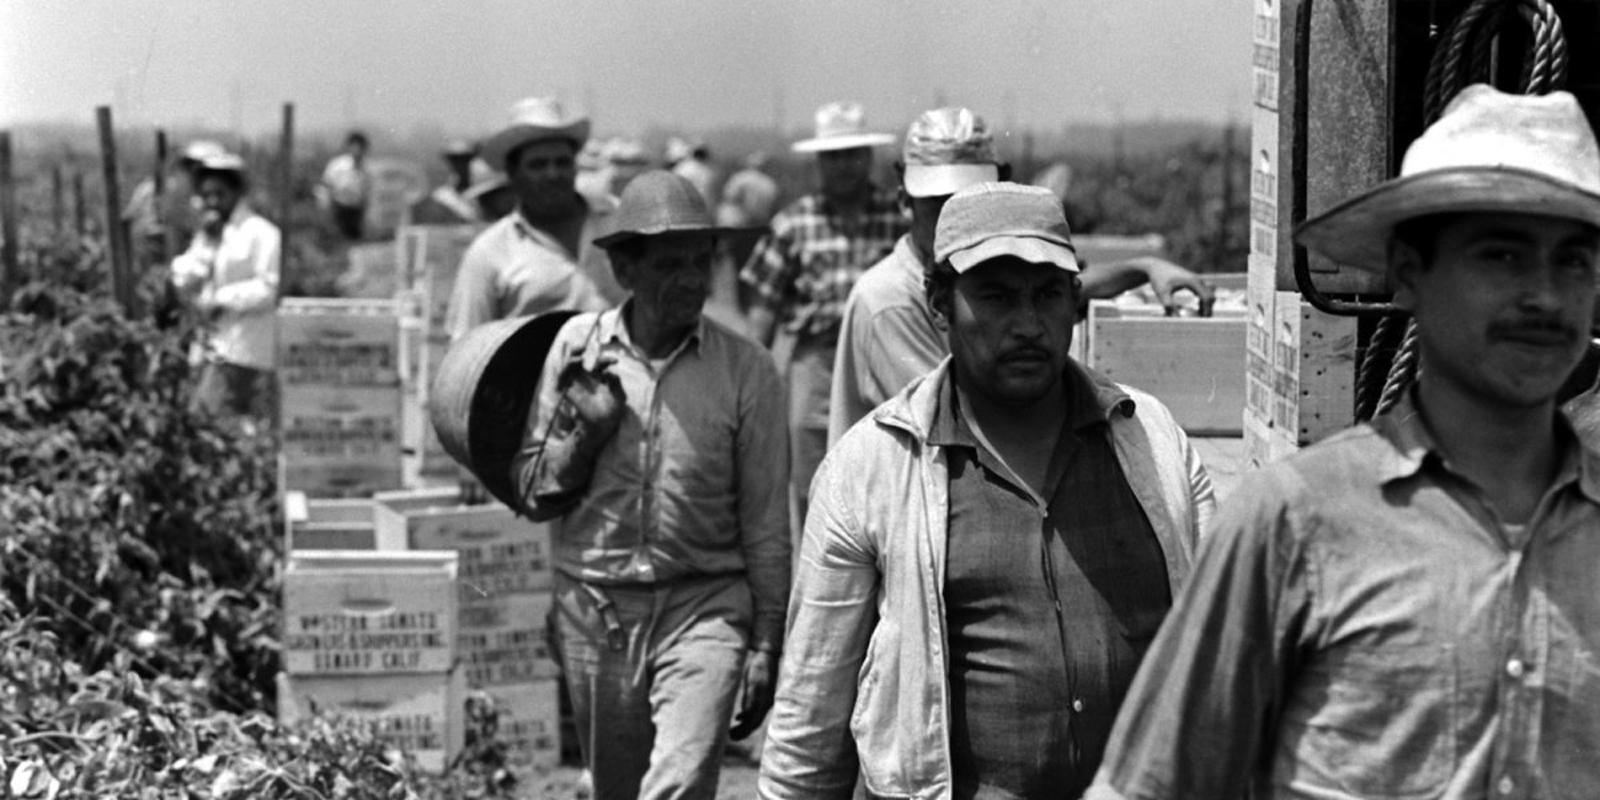 Migrant Farm Workers, 1959, Michael Rougier—Time & Life Pictures/Getty Images. Via Life.